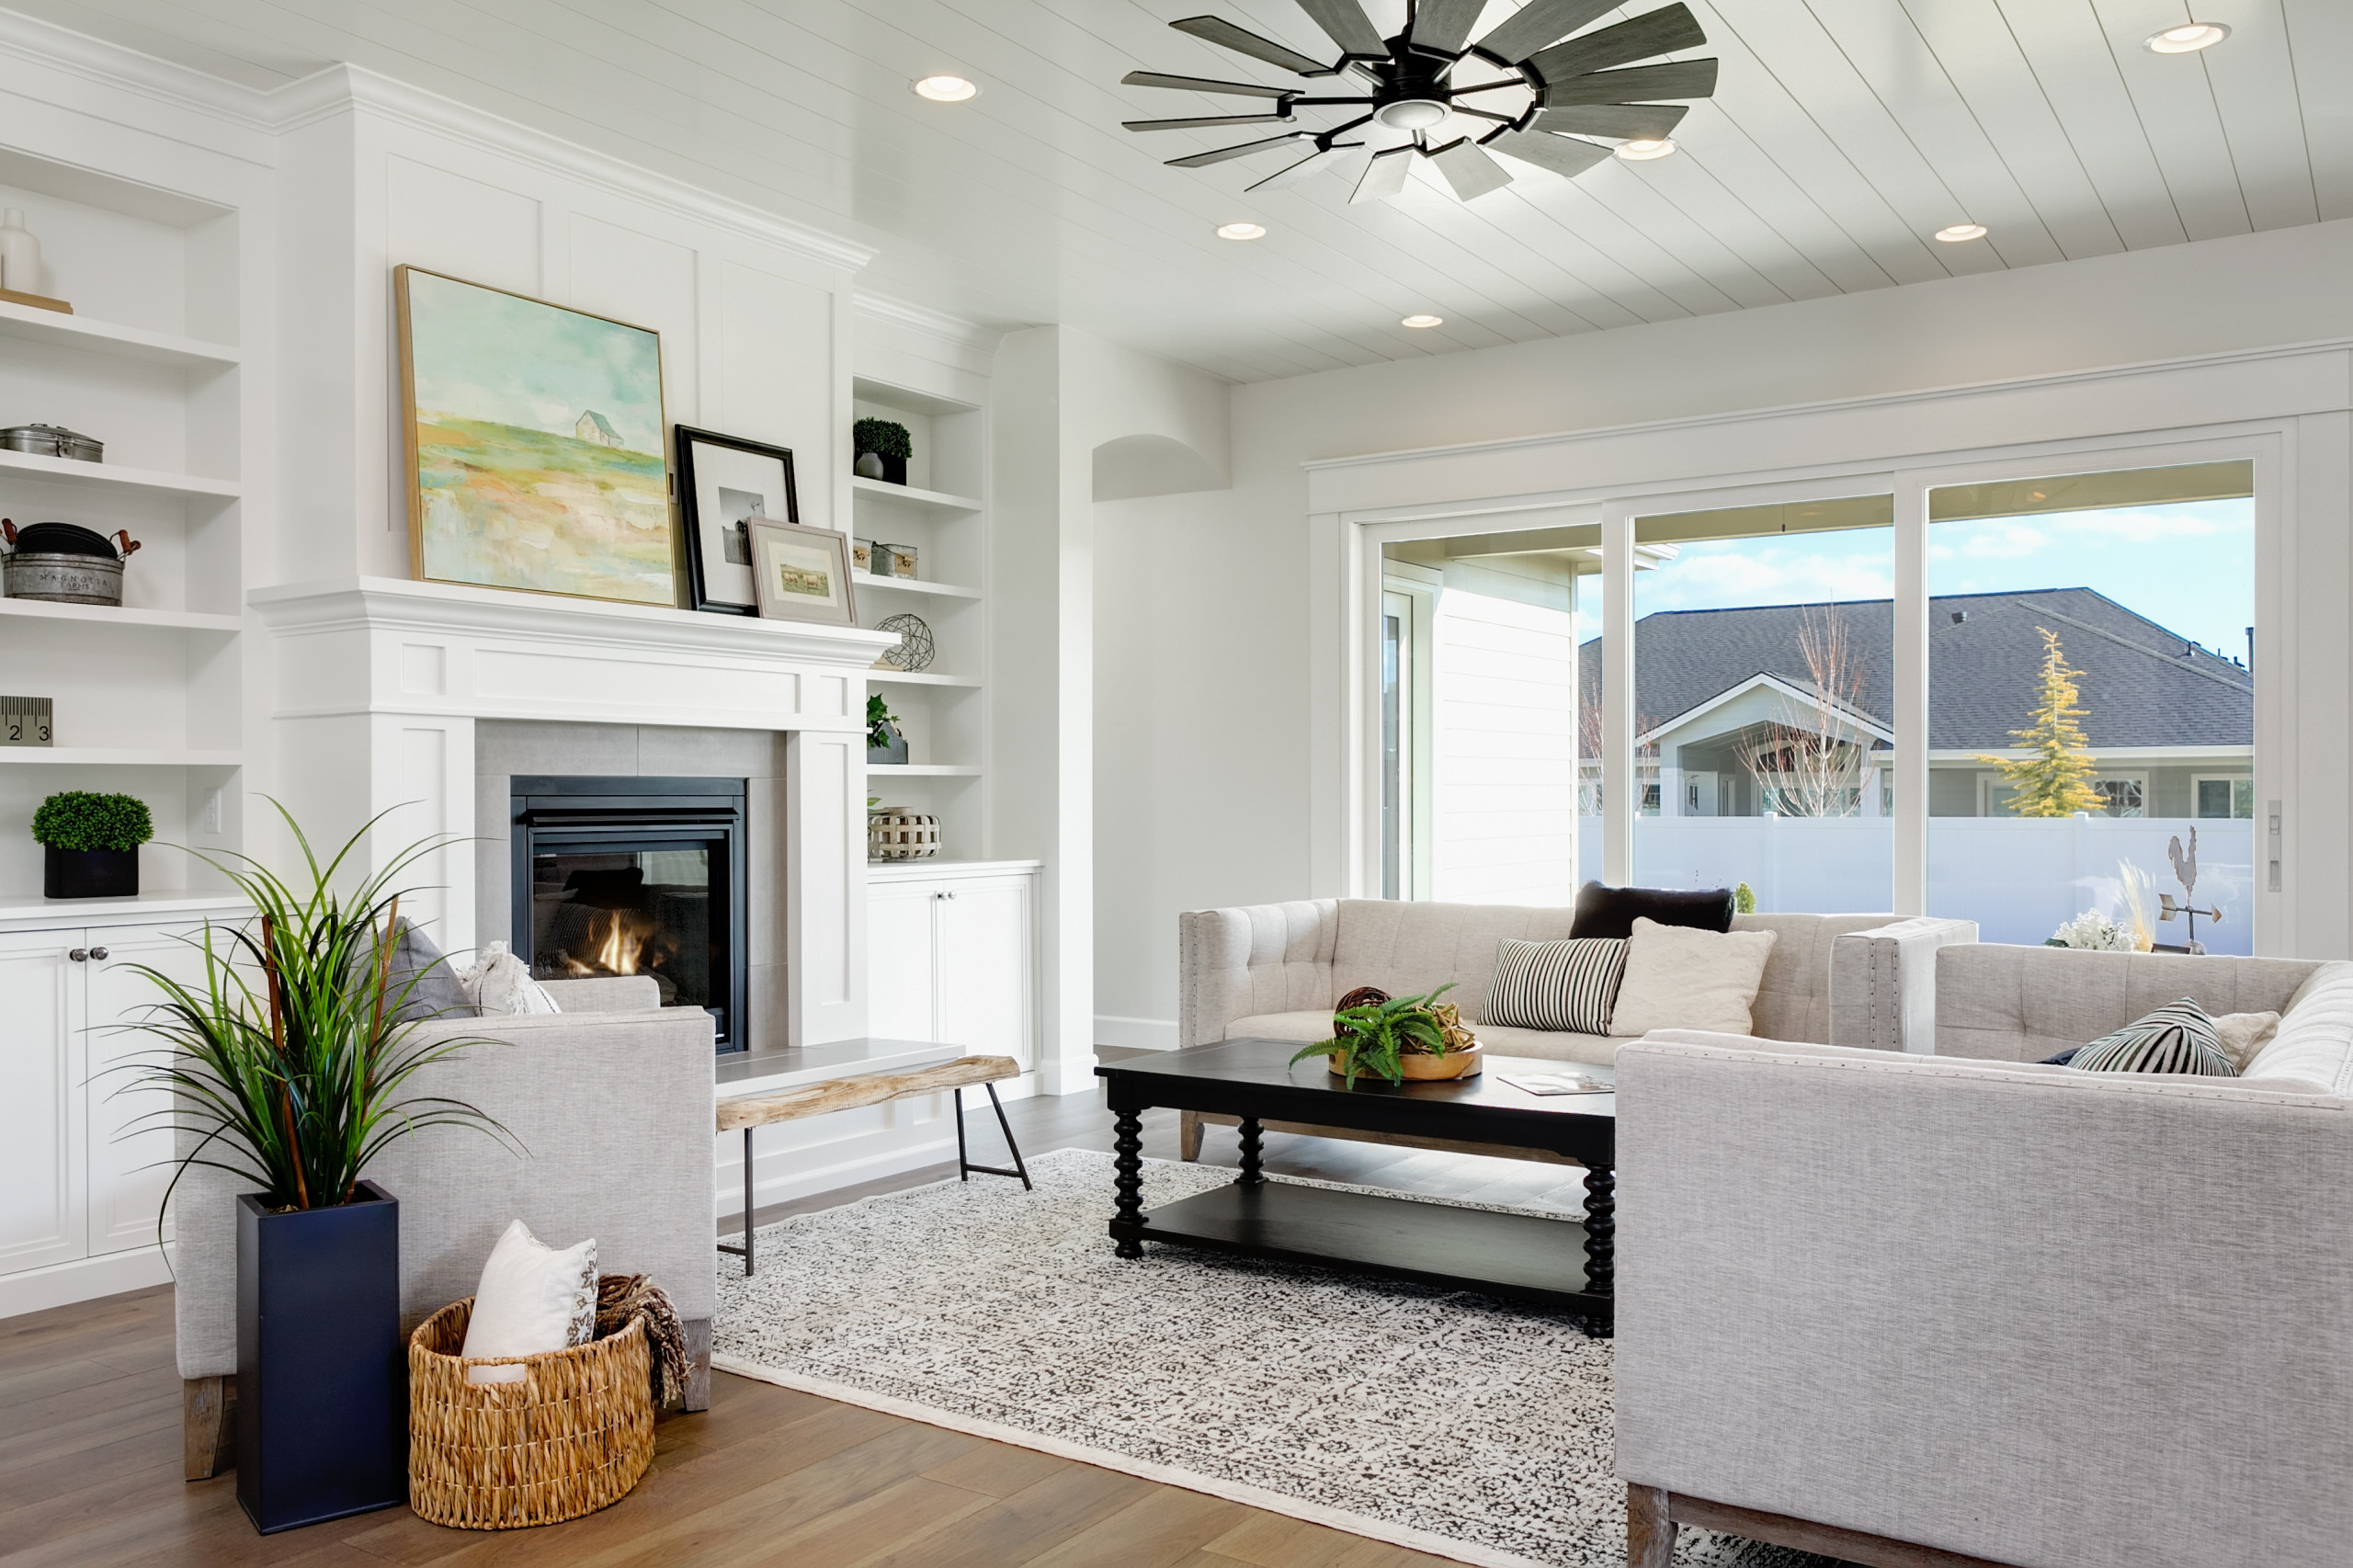 75 Beautiful Formal Living Room Pictures Ideas November 2020 Houzz